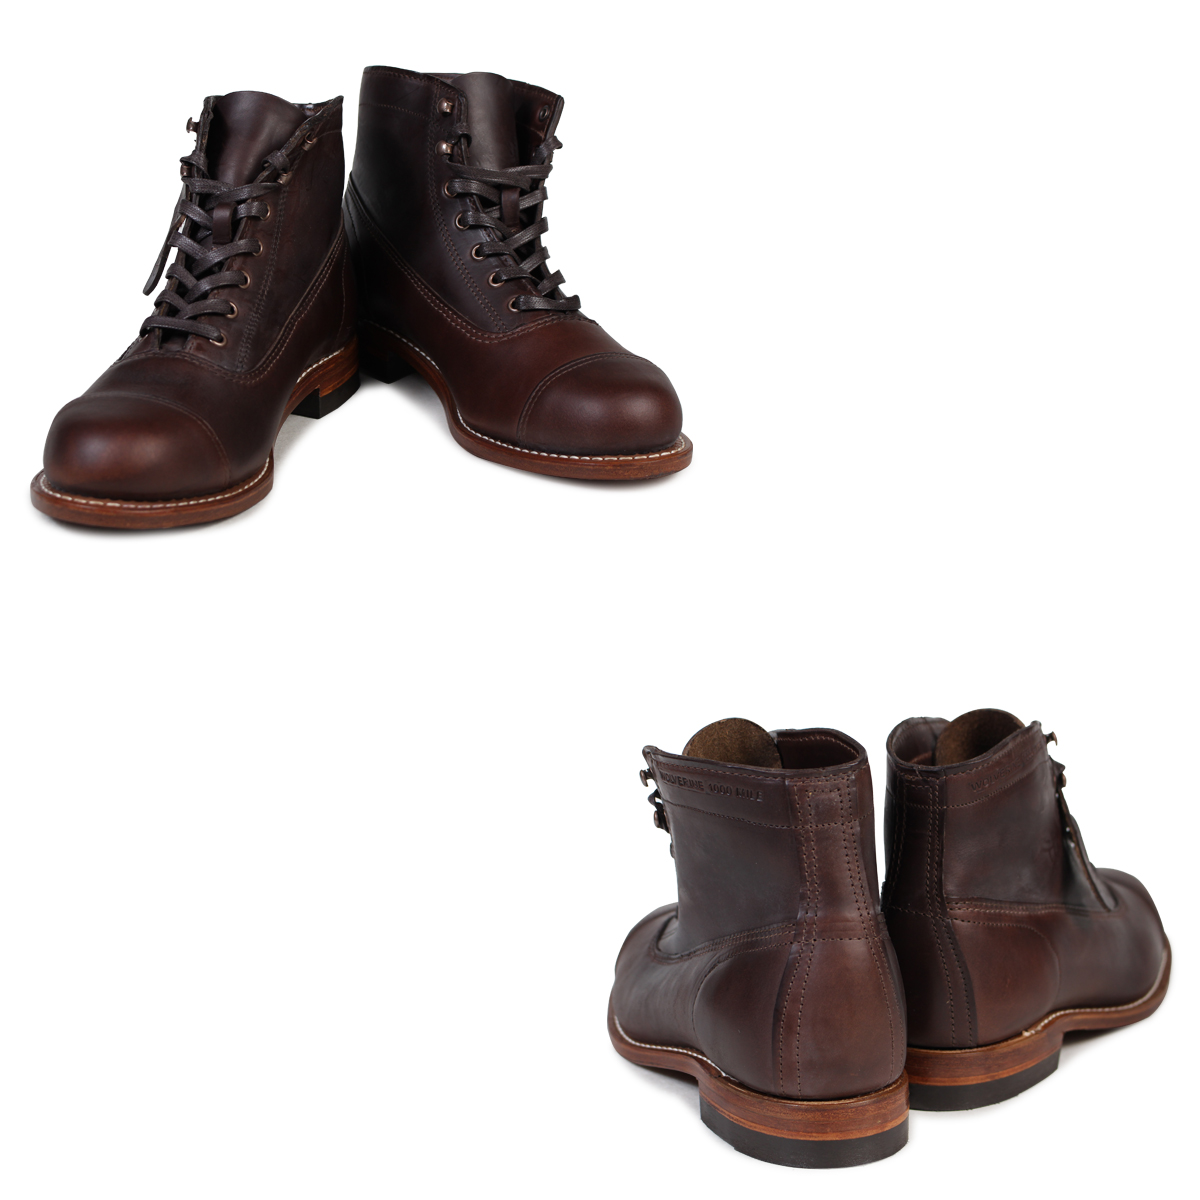 f31150ee144 Wolverine boot store - Are cloth nappies worth it